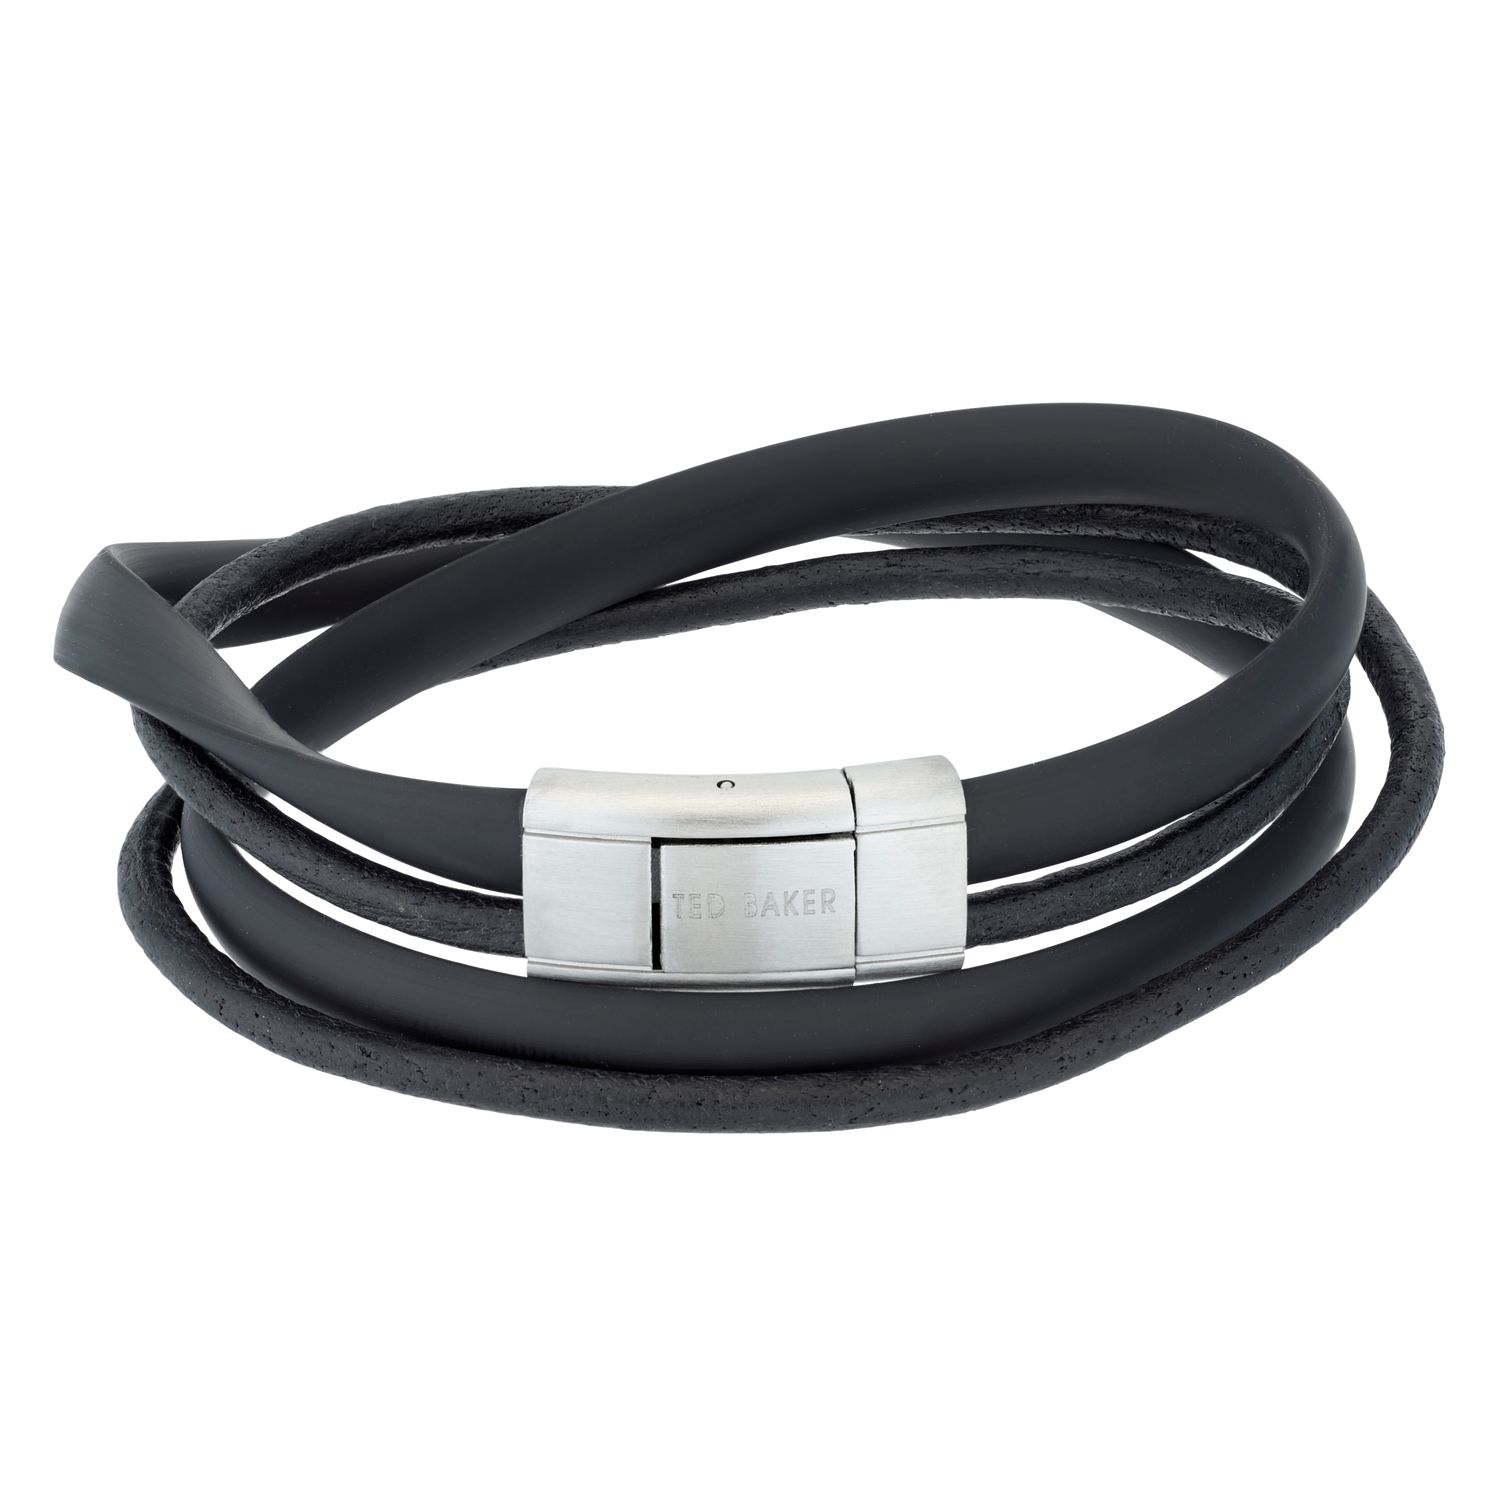 Ted Baker Men's Mera Black Leather Bracelet - Product number 4600797